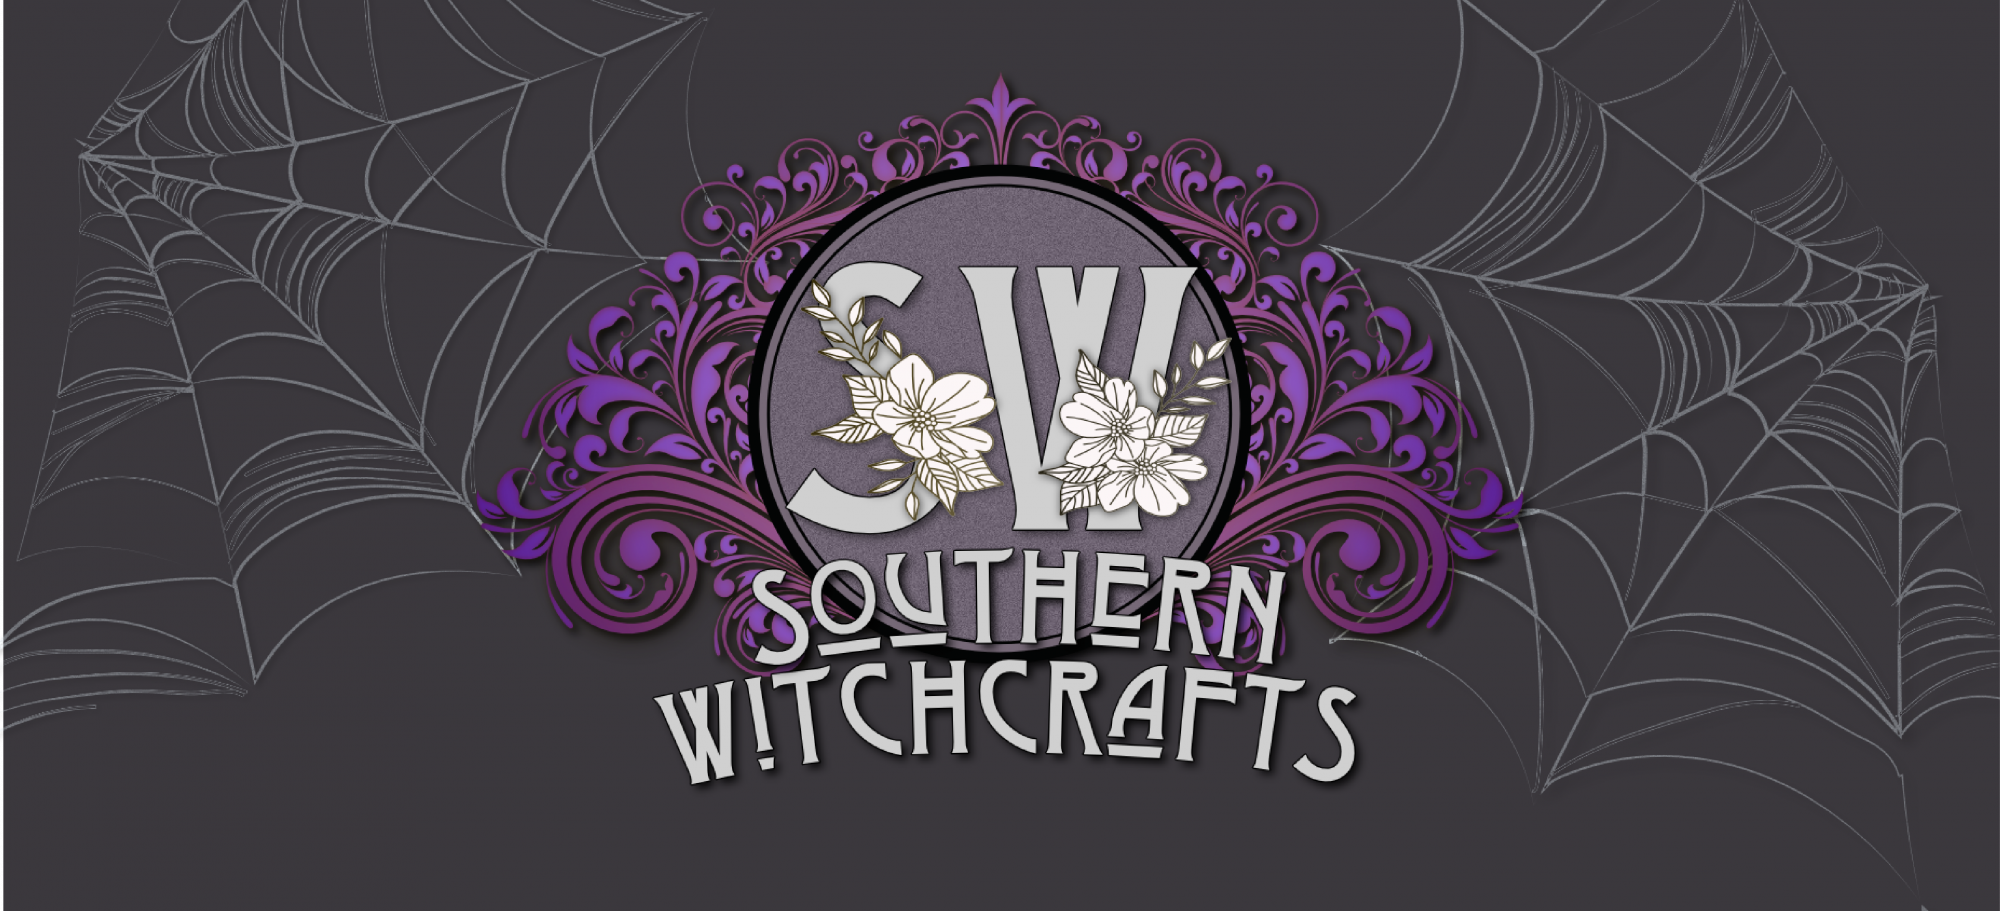 Southern Witchcrafts